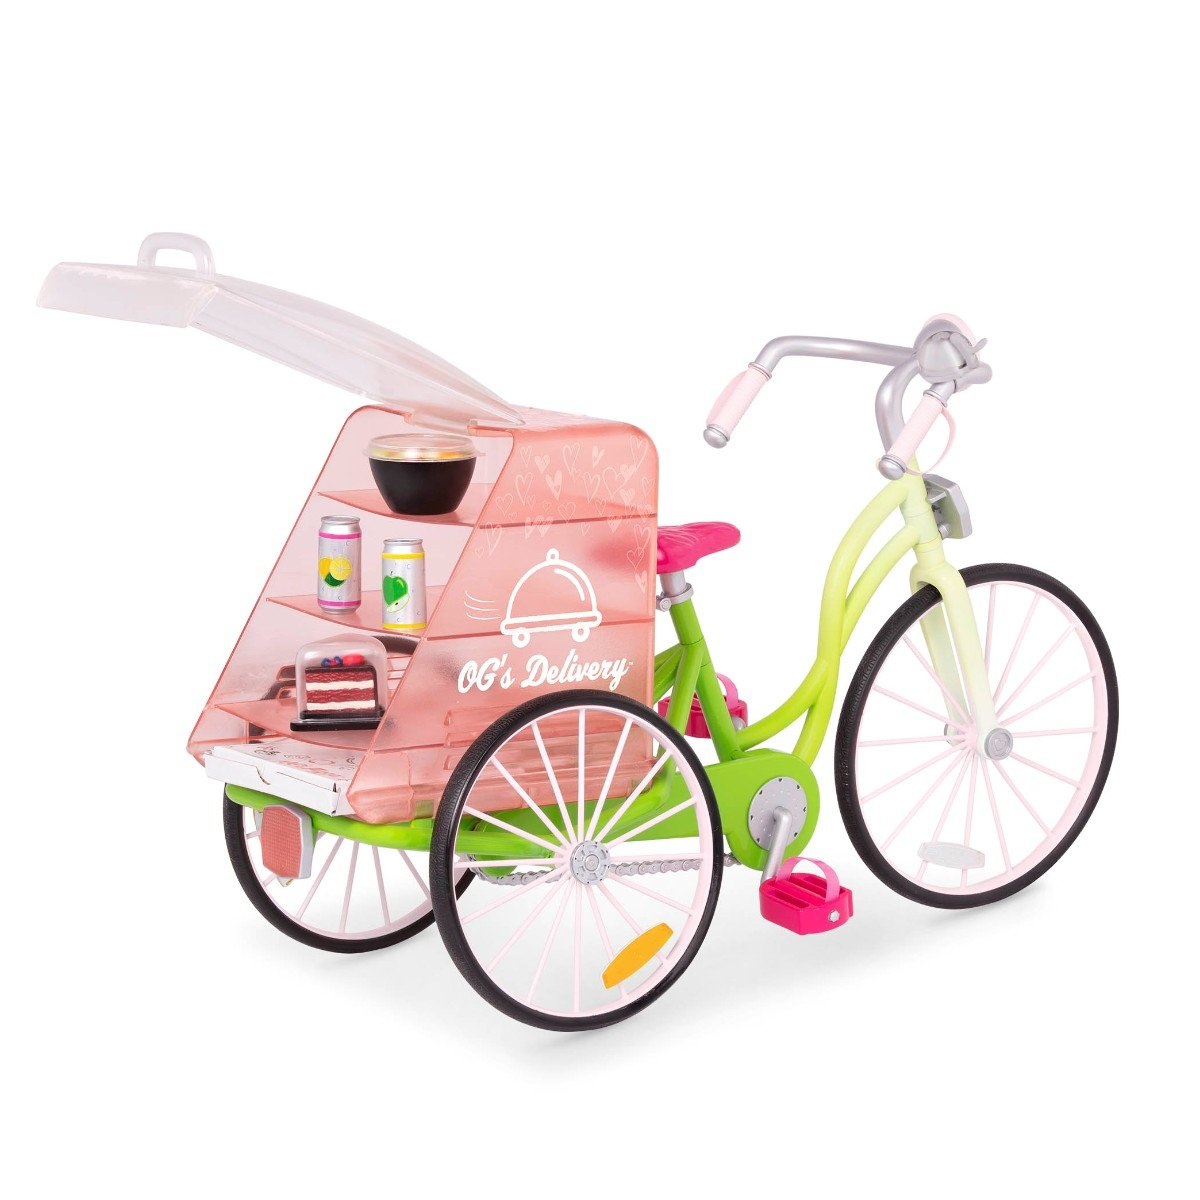 Our Generation - Delivery Bike (737963)